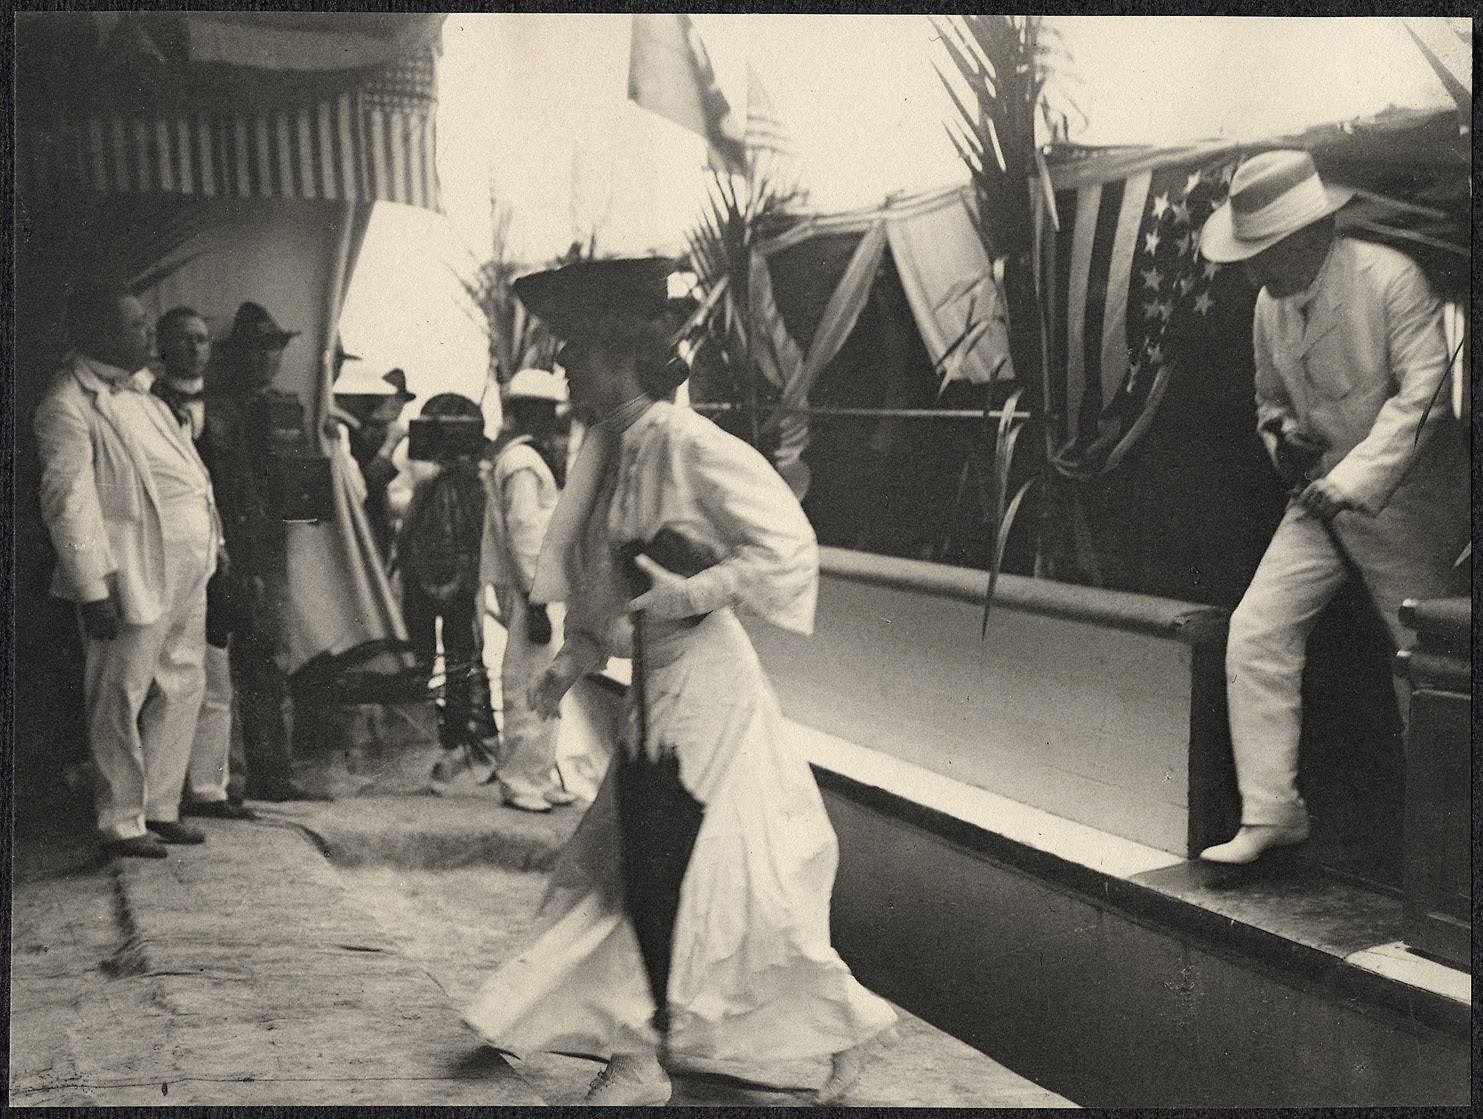 Manila: Alice Roosevelt and Nicholas Longworth disembark